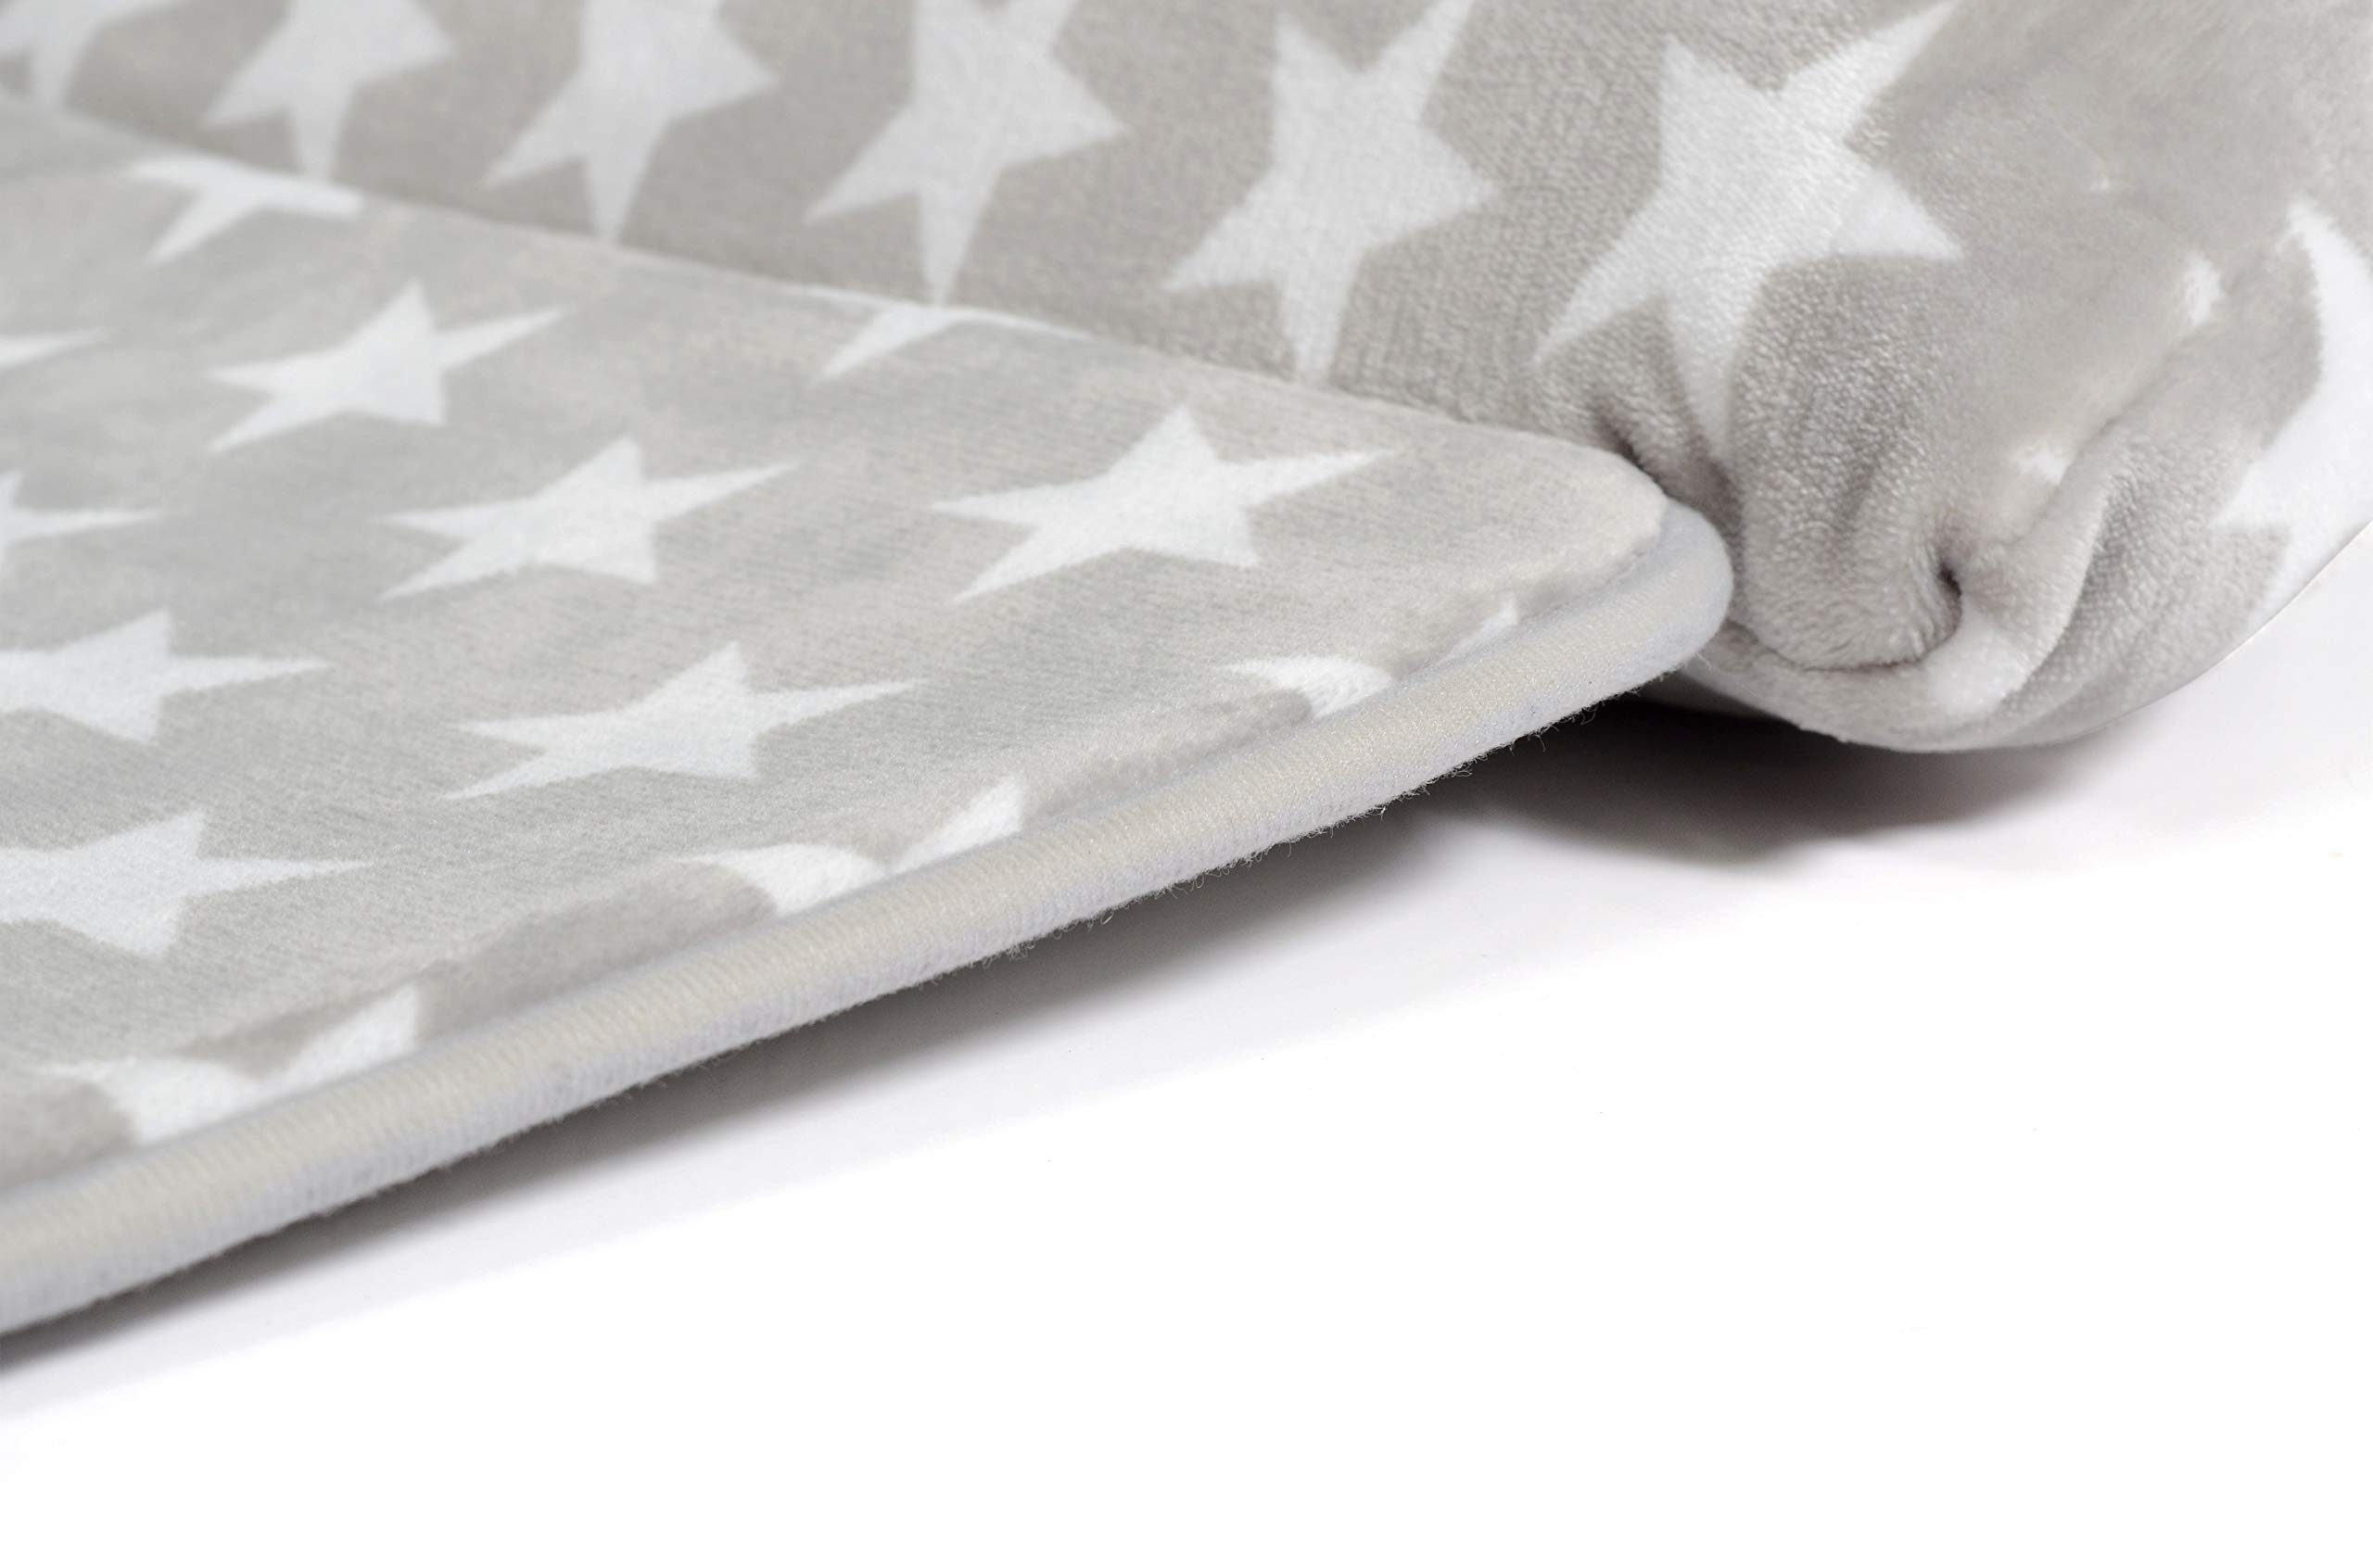 Milliard -Memory Foam- Nap Mat Roll Stars with Fuzzy Blanket and Removable Pillow, Machine Washing for Toddler Daycare Preschool Kindergarten and Sleepovers by Milliard (Image #7)